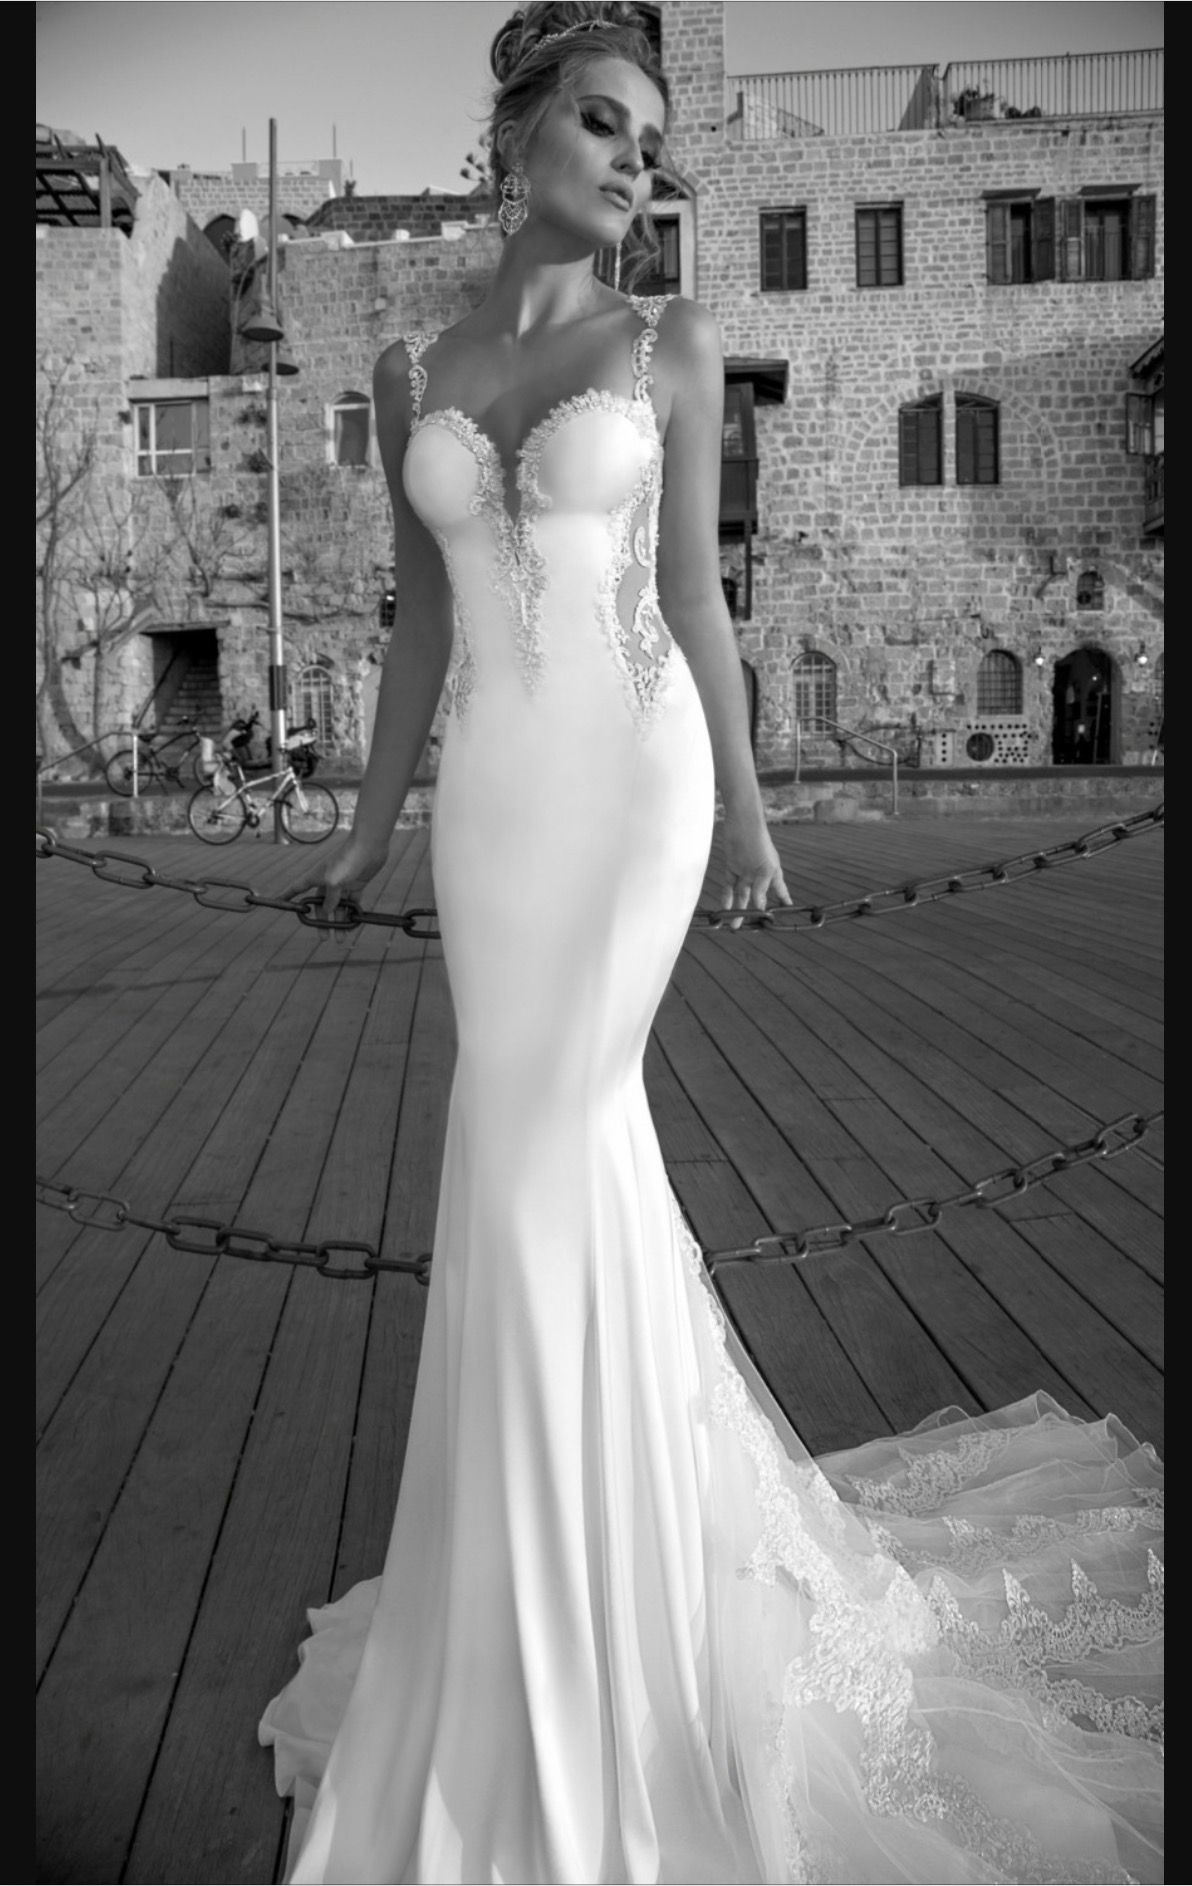 Mother of the bride beach dresses for weddings  Pin by Jordanna Shank on Walking in White  Pinterest  Wedding